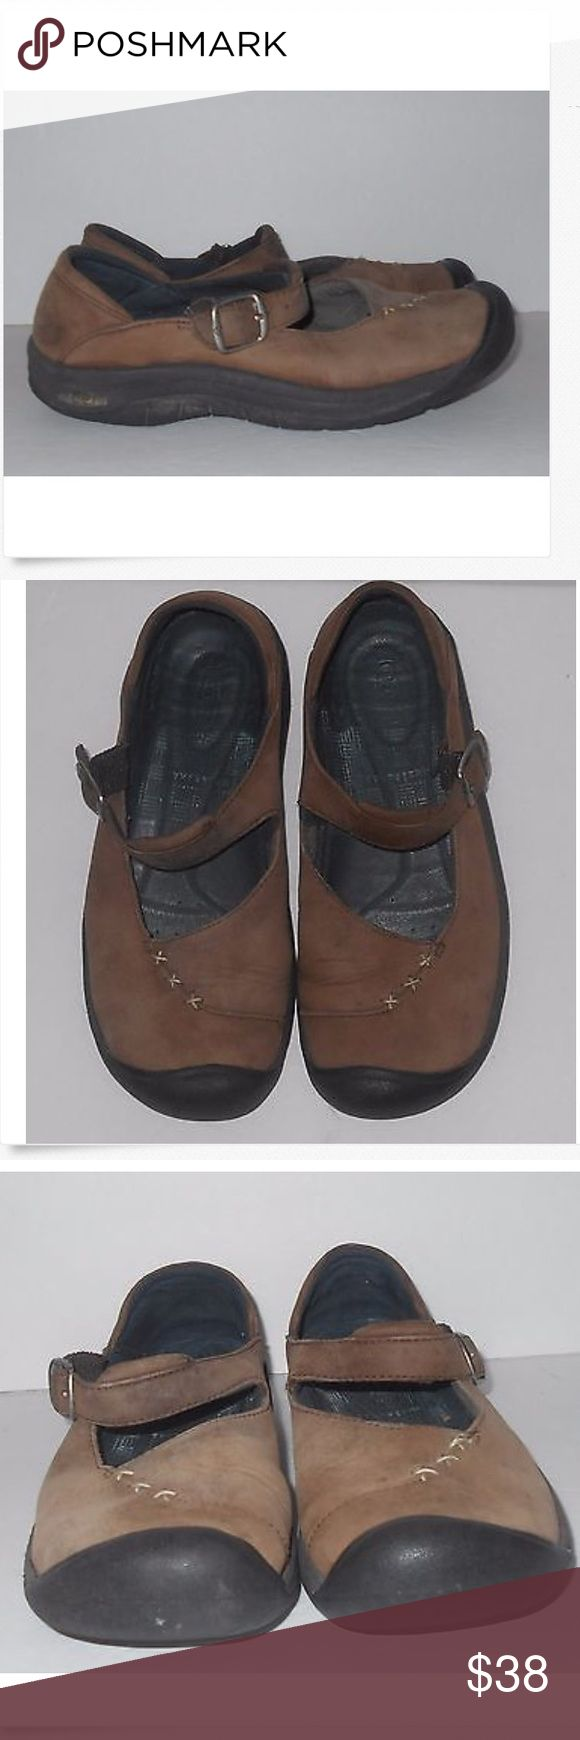 Keen Brown Suede Mary Jane Shoes Women's size 7 Keen Brown Suede Mary Jane Shoes. Women's size US 7, UK 4.5, EU 37.5. They have some wear but a lot of live left in them Keen Shoes